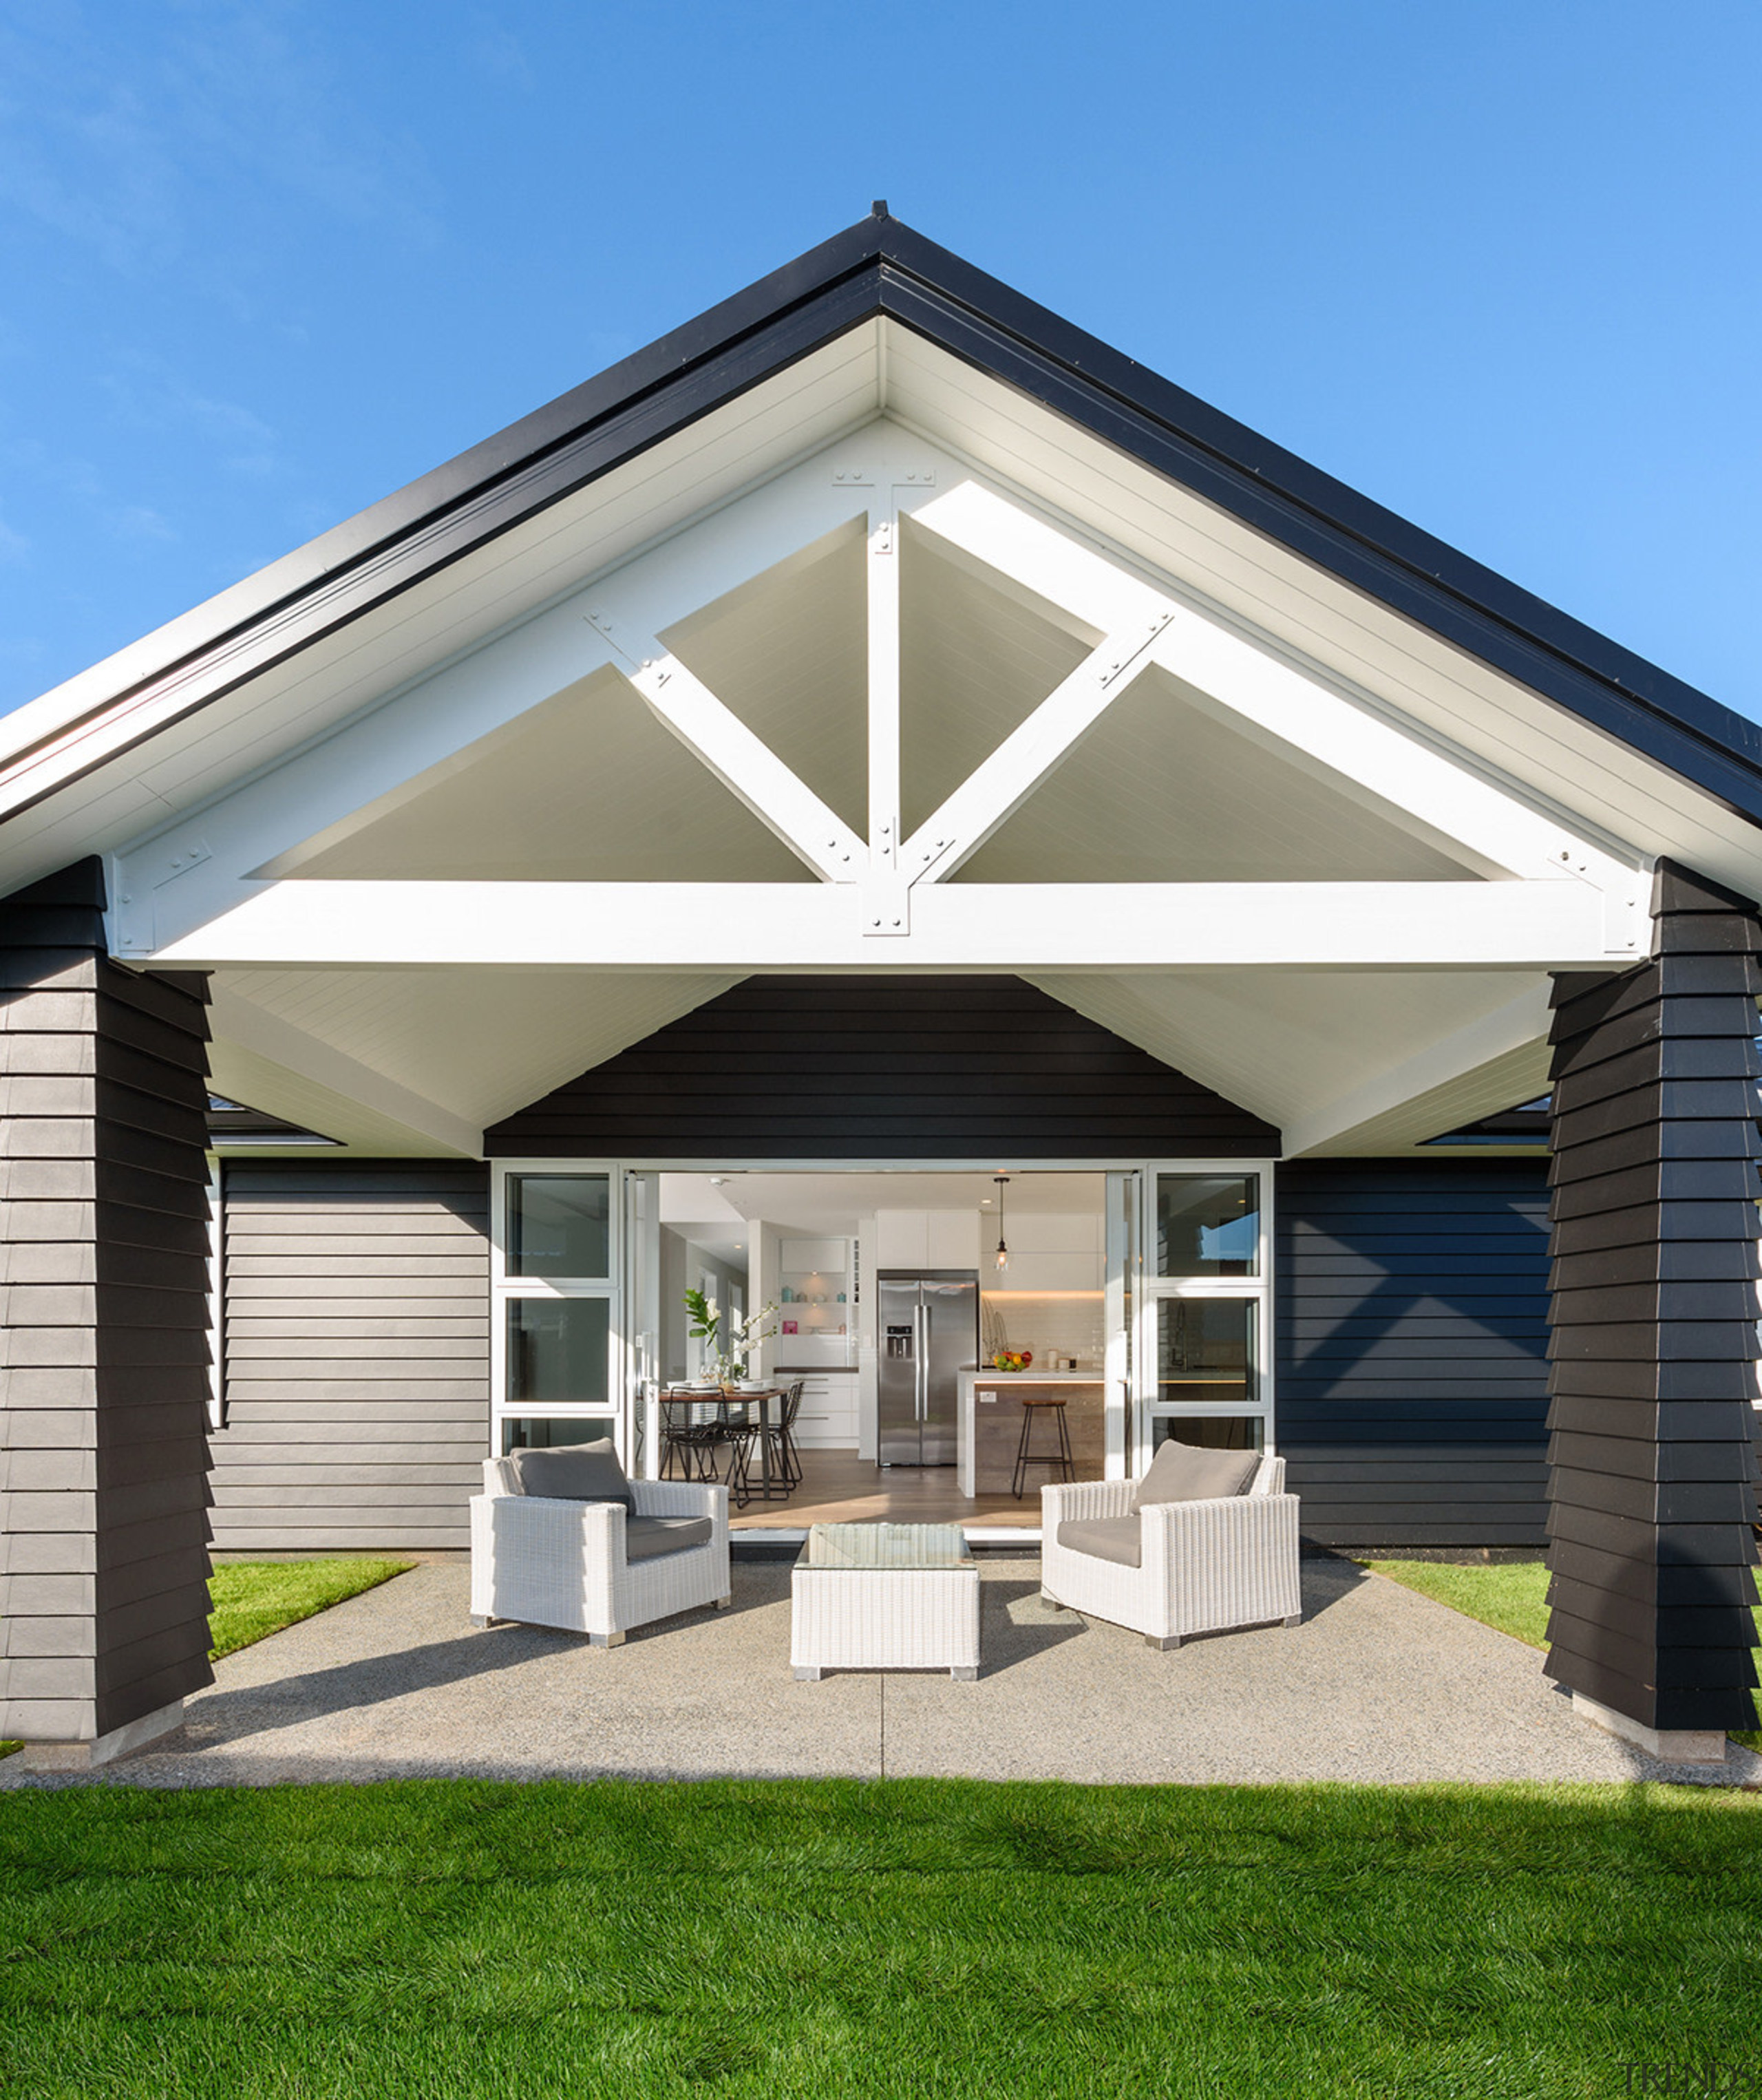 The large alfresco dining area is just one home, house, residential area, siding, New Home builder,  Sentinel Homes, Outside dining area,